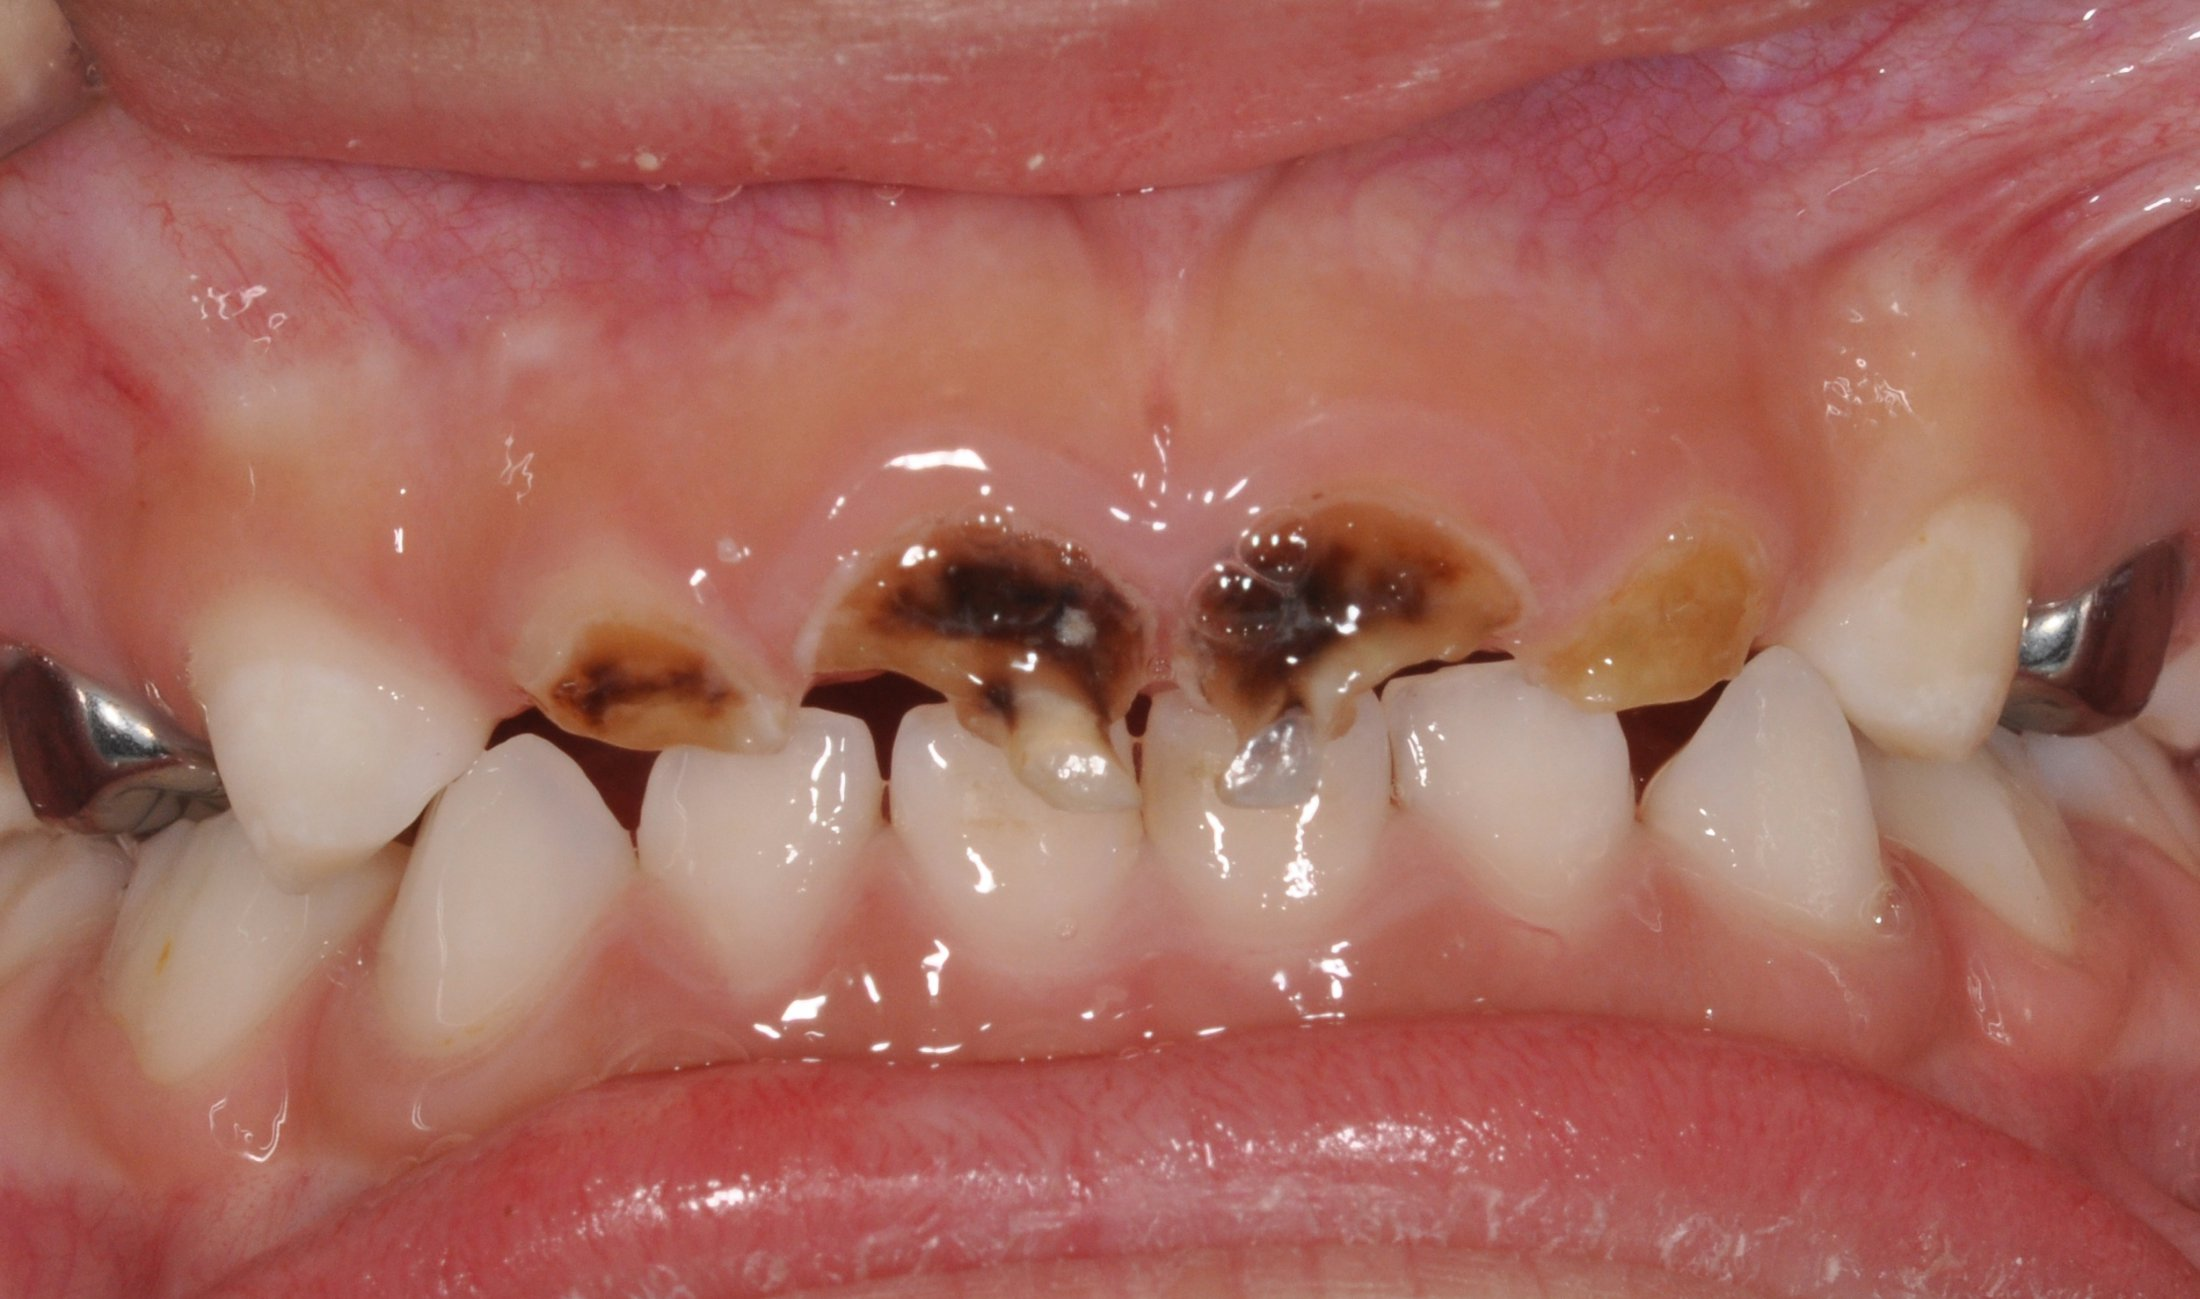 Pediatric Tooth Decay: Causes, Treatment and Prevention